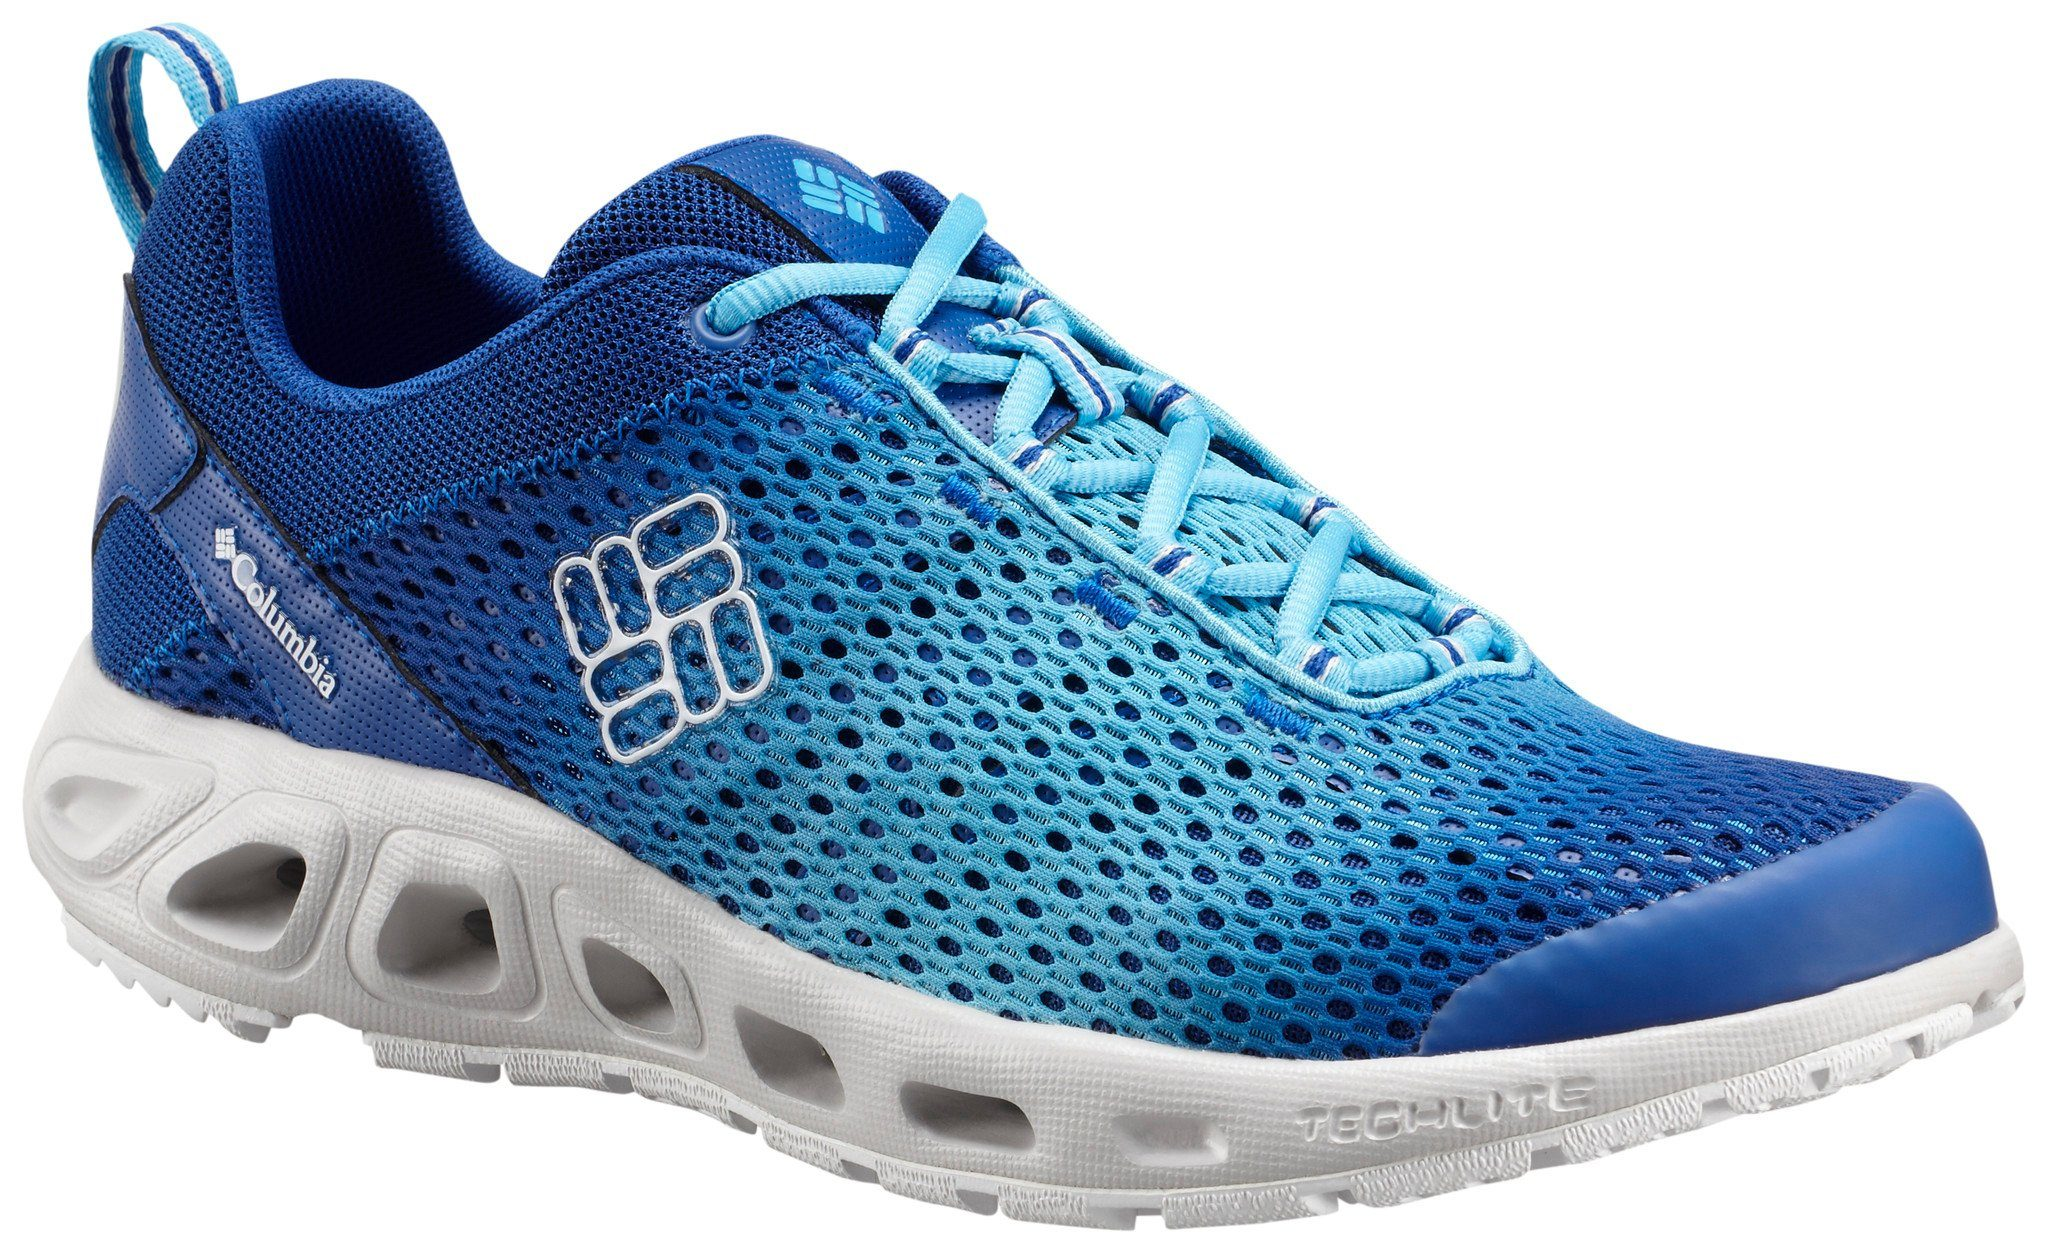 Columbia Kletterschuh »Drainmaker III Shoes Men«